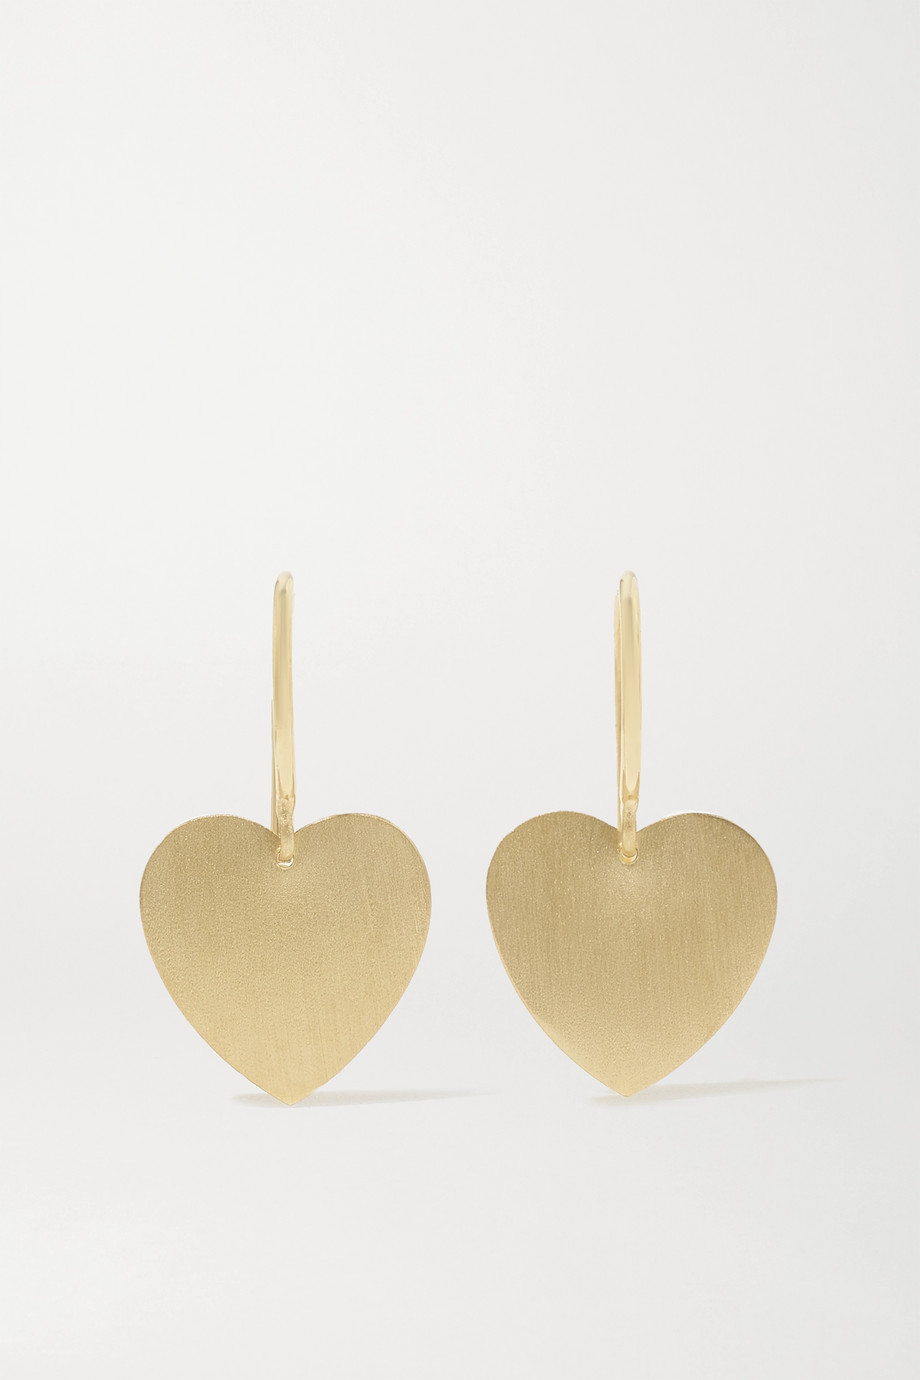 IRENE NEUWIRTH Love 18-karat gold earrings